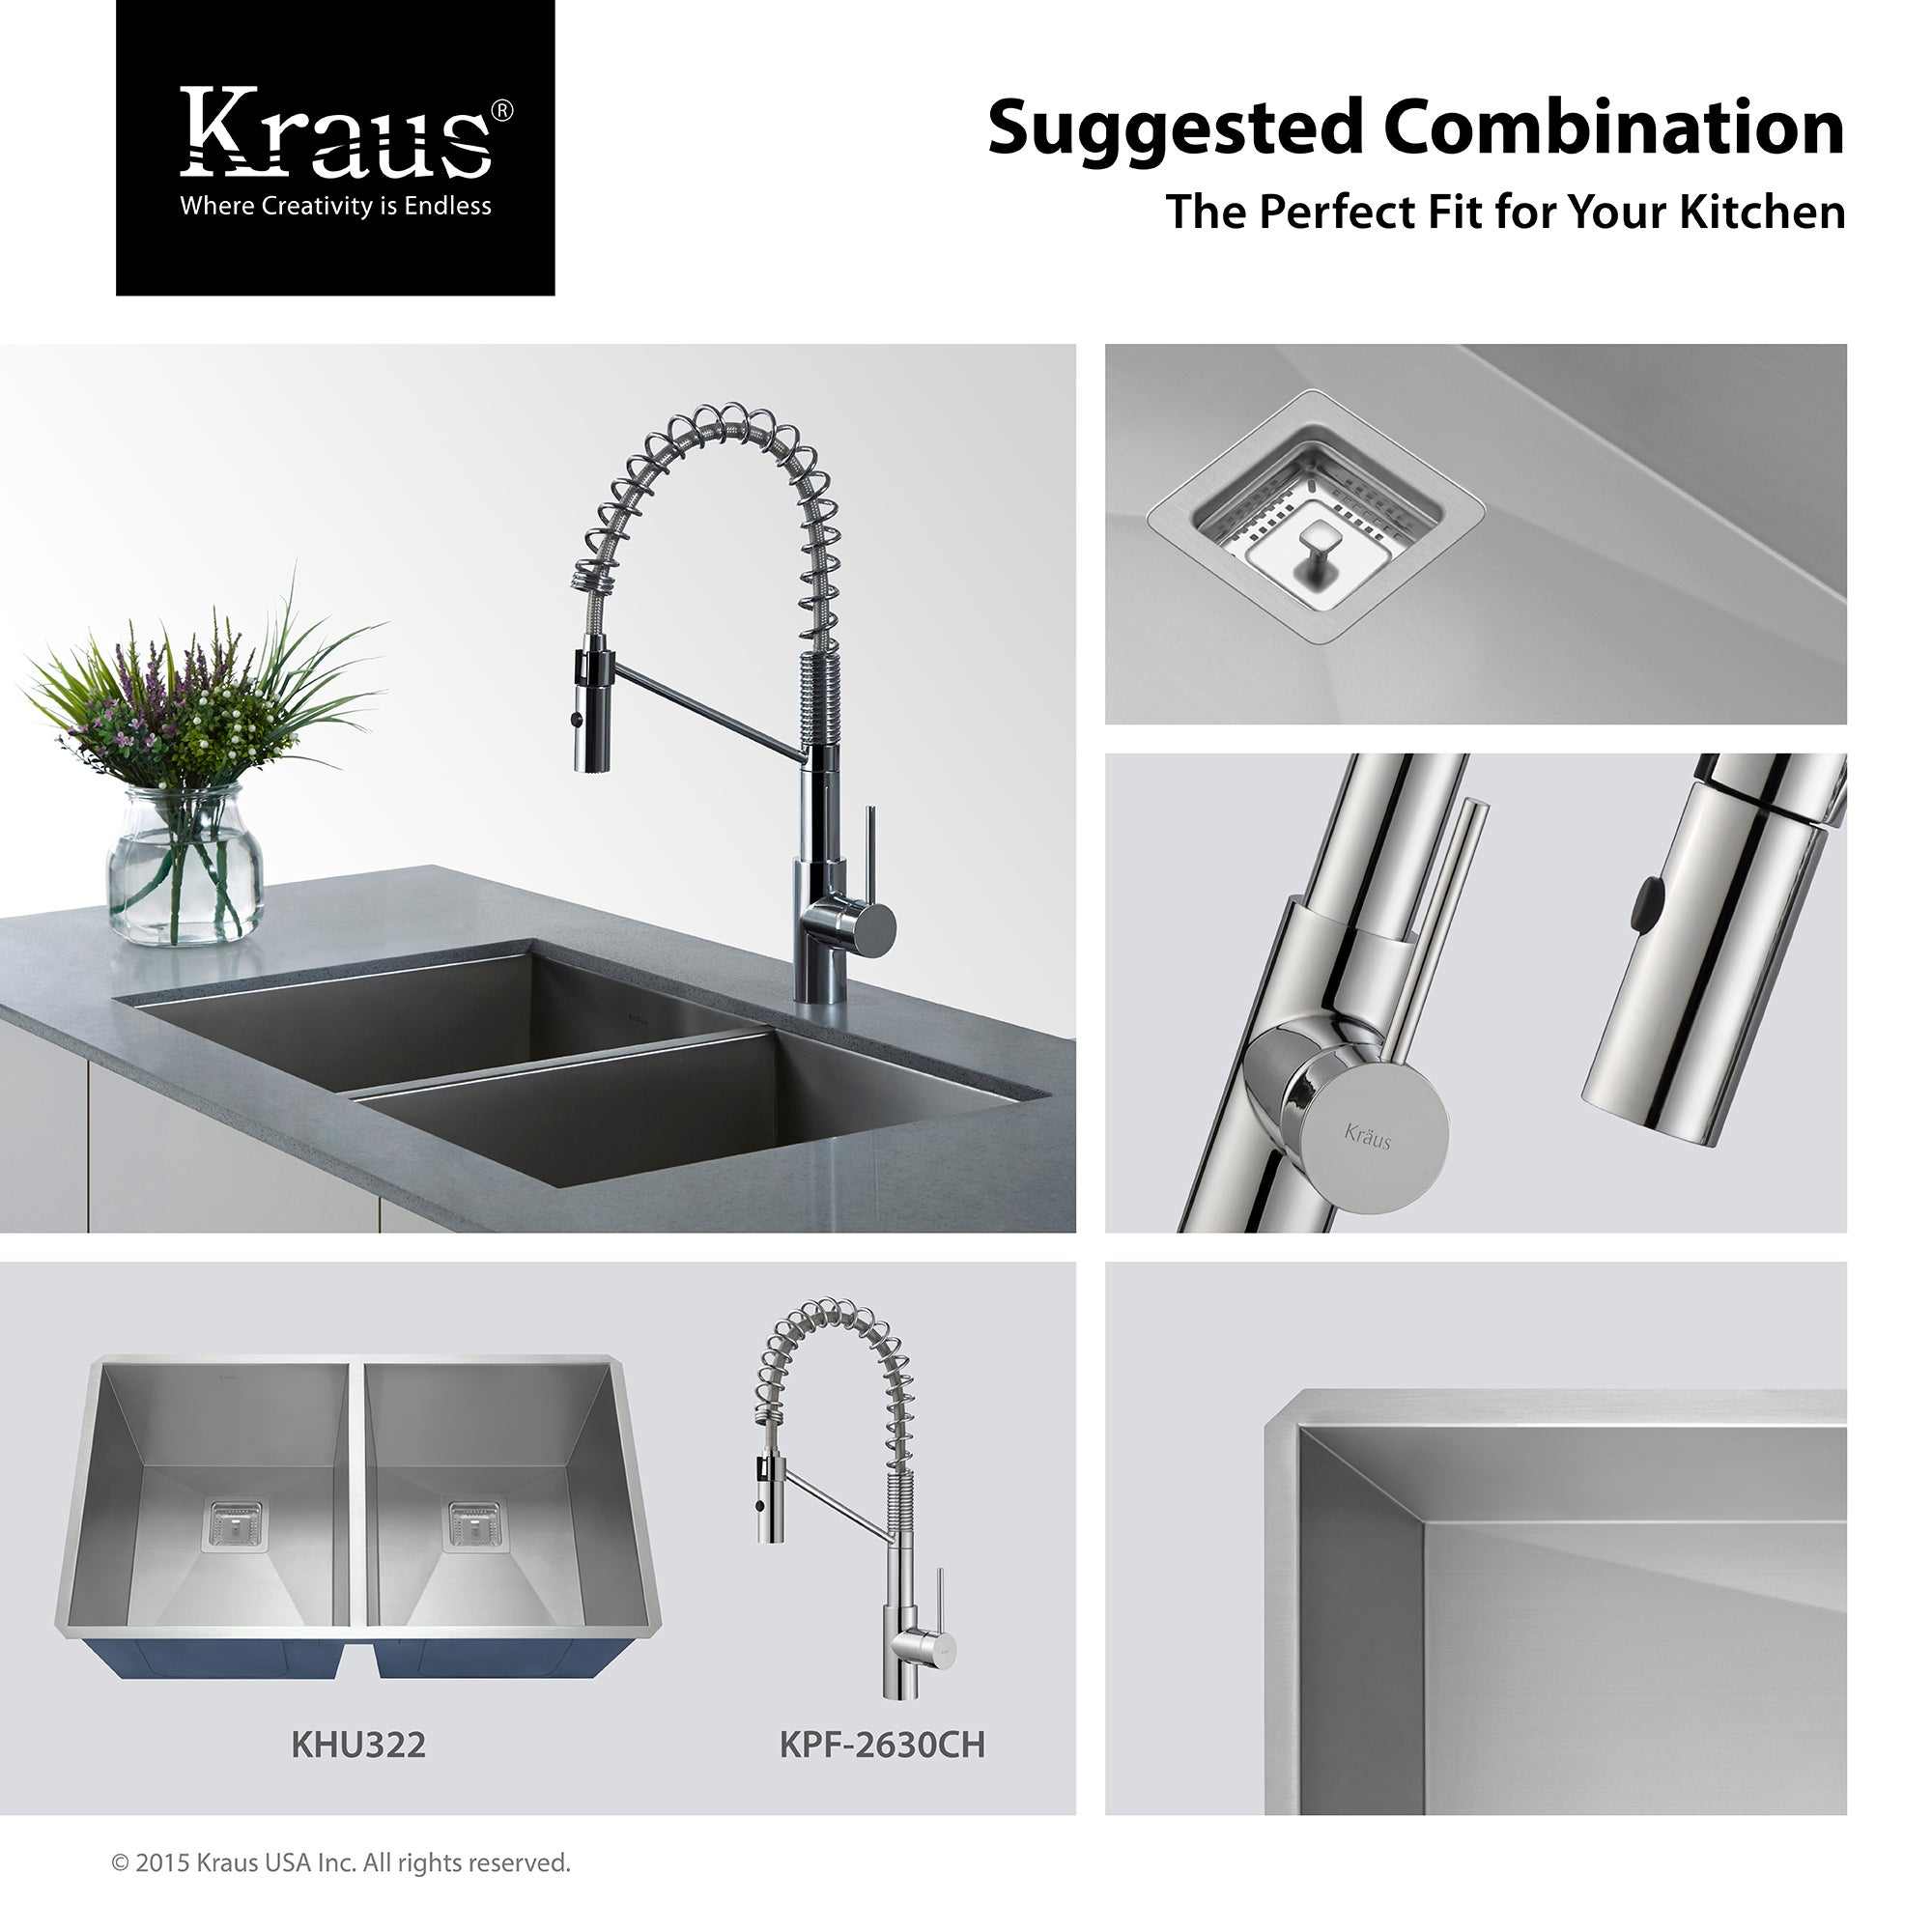 kpf com kitchen kraus commercial faucet kraususa handle sprayhead pull kf sprayer with function down bolden single dual inch